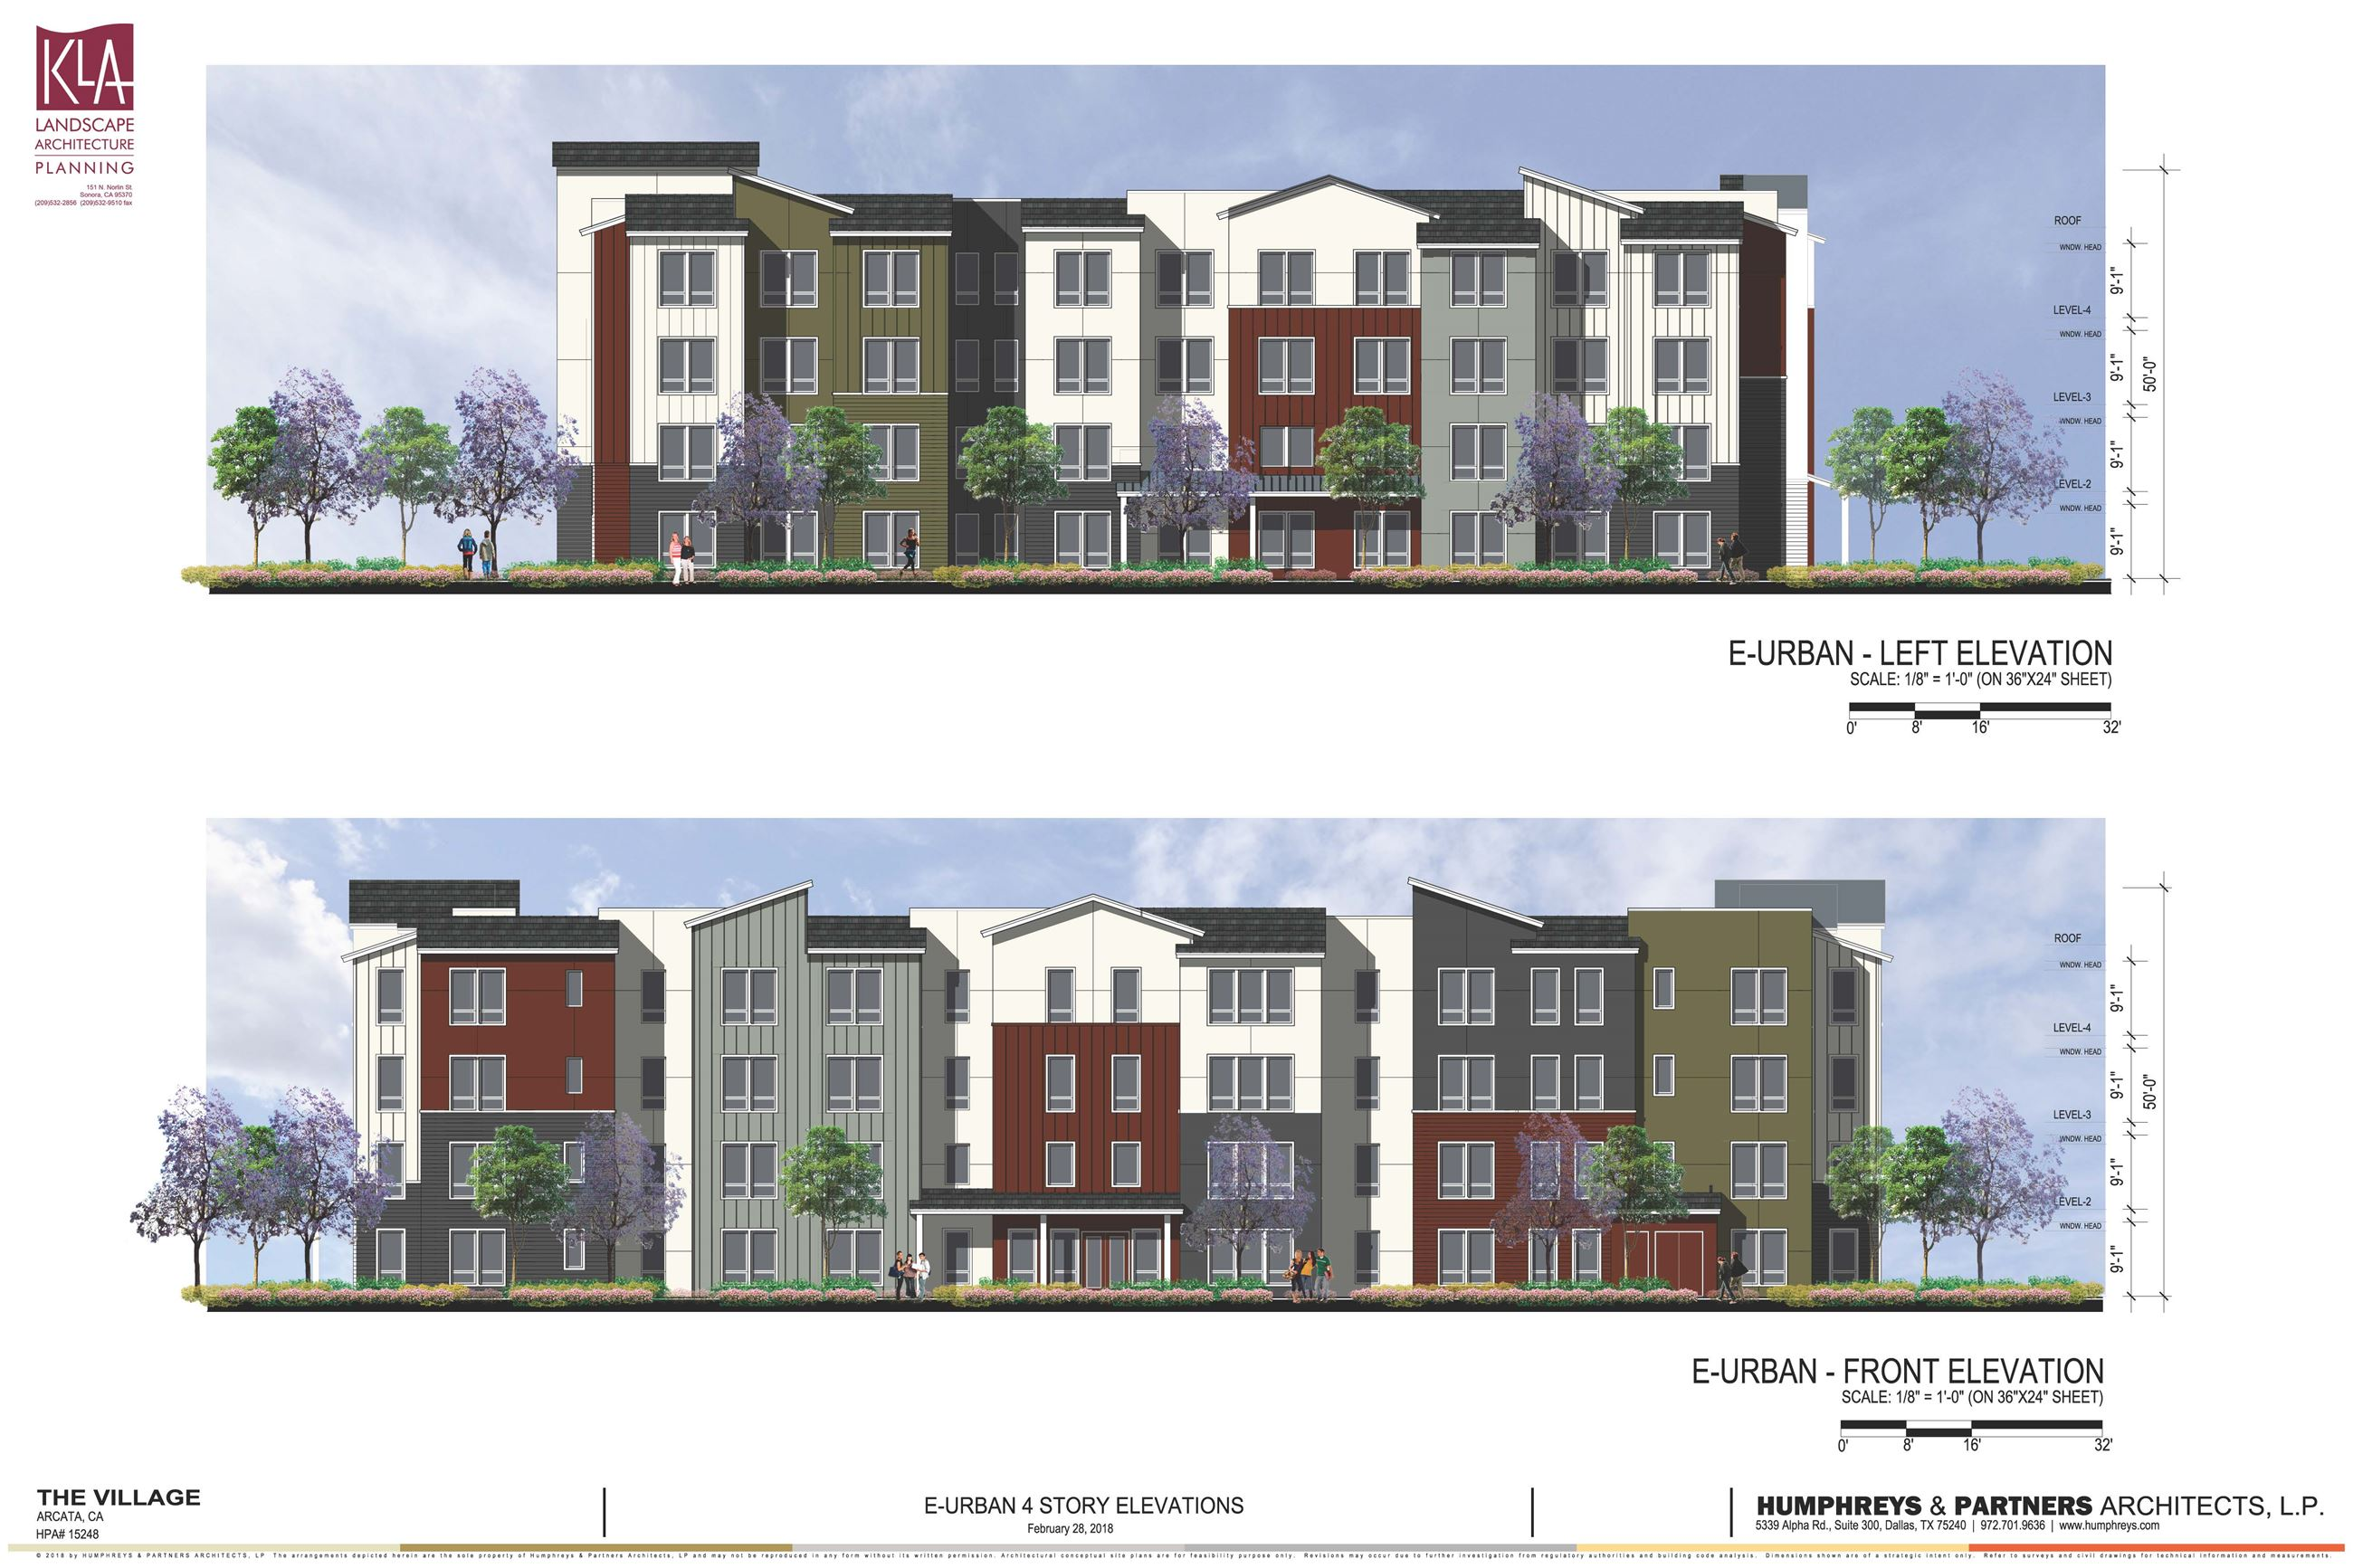 4 Story Character Elevation for The Village Housing Project Opens in new window